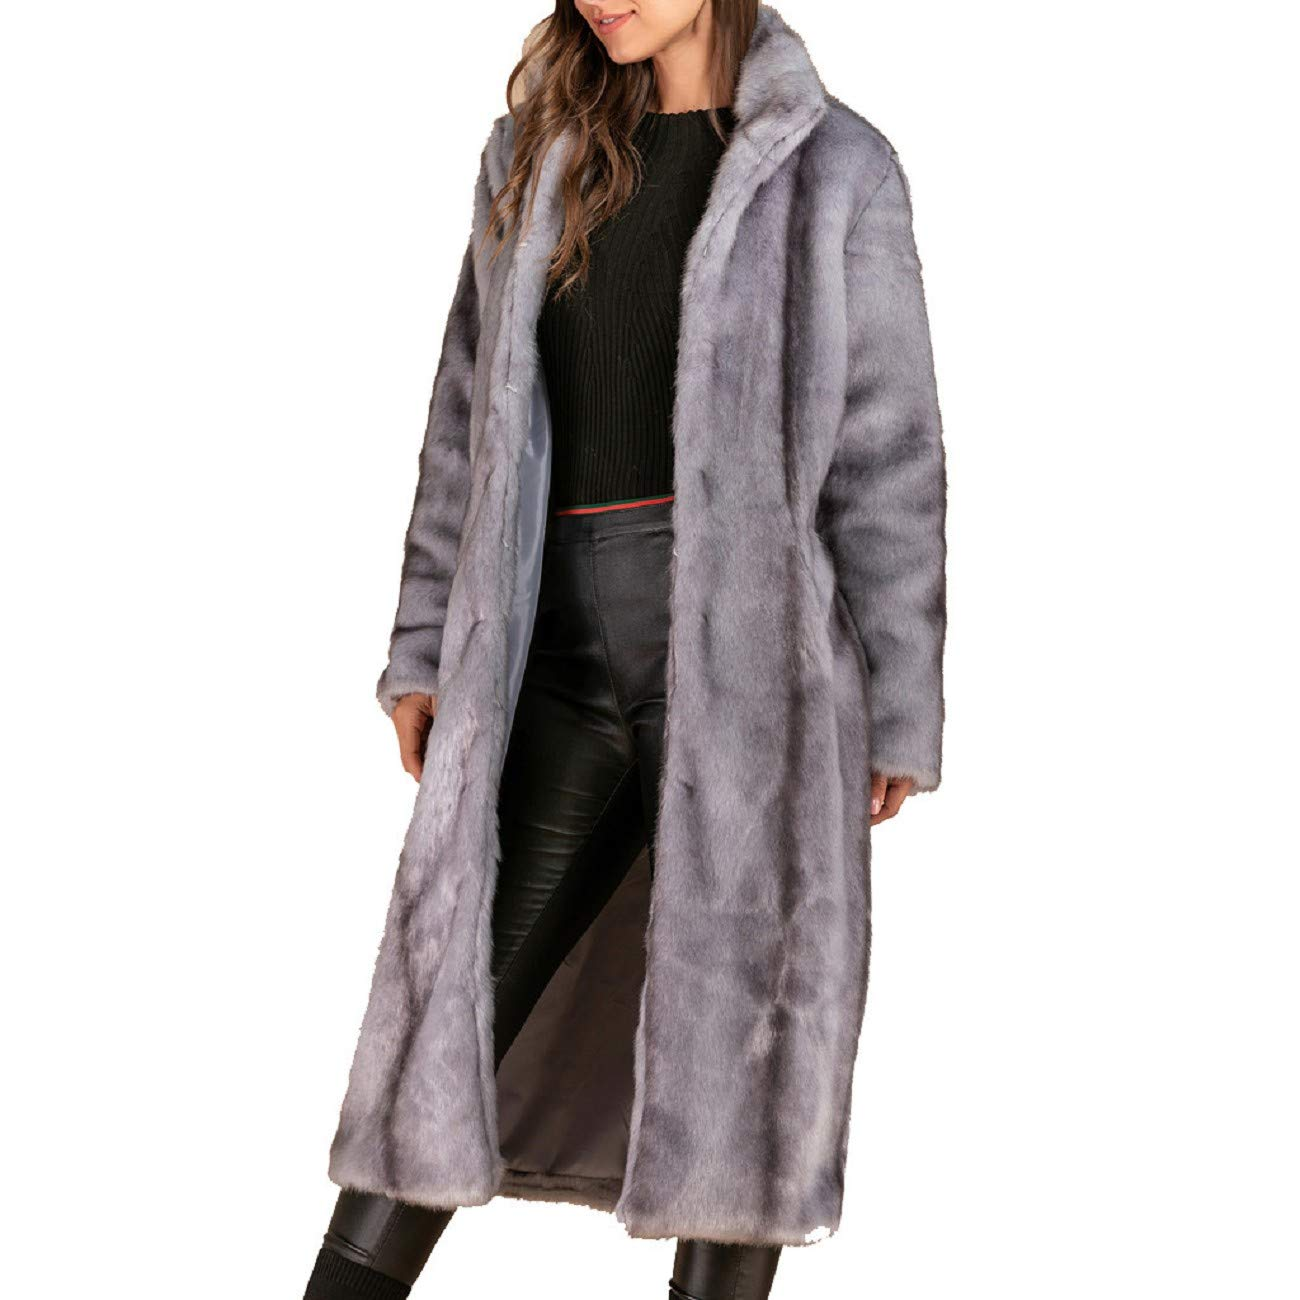 Reokoou Ladies Faux Fur Coat Casual Long Sleeve Parka Plus Size Jacket Luxury Elegant Long Trench Winter Warm Overcoat Gray by Reokoou